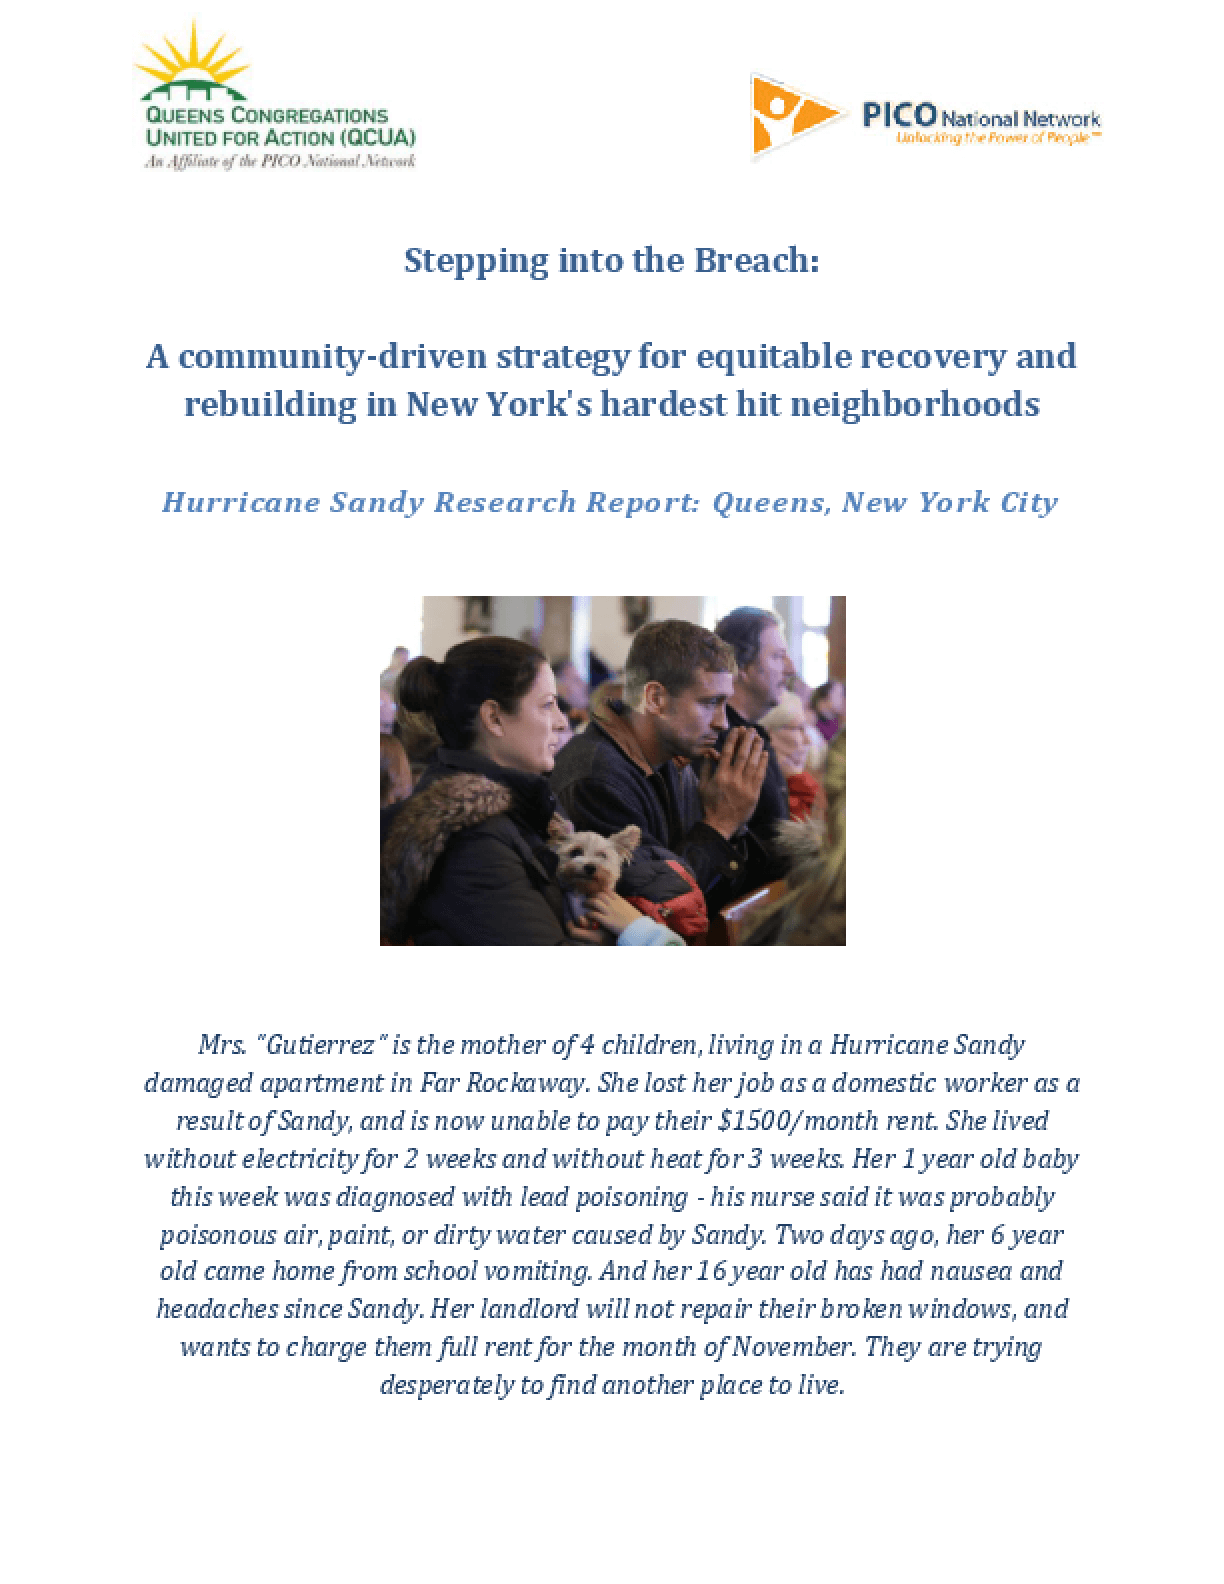 Stepping into the Breach: A Community-Driven Strategy for Equitable Recovery and Rebuilding in New York's Hardest Hit Neighborhoods